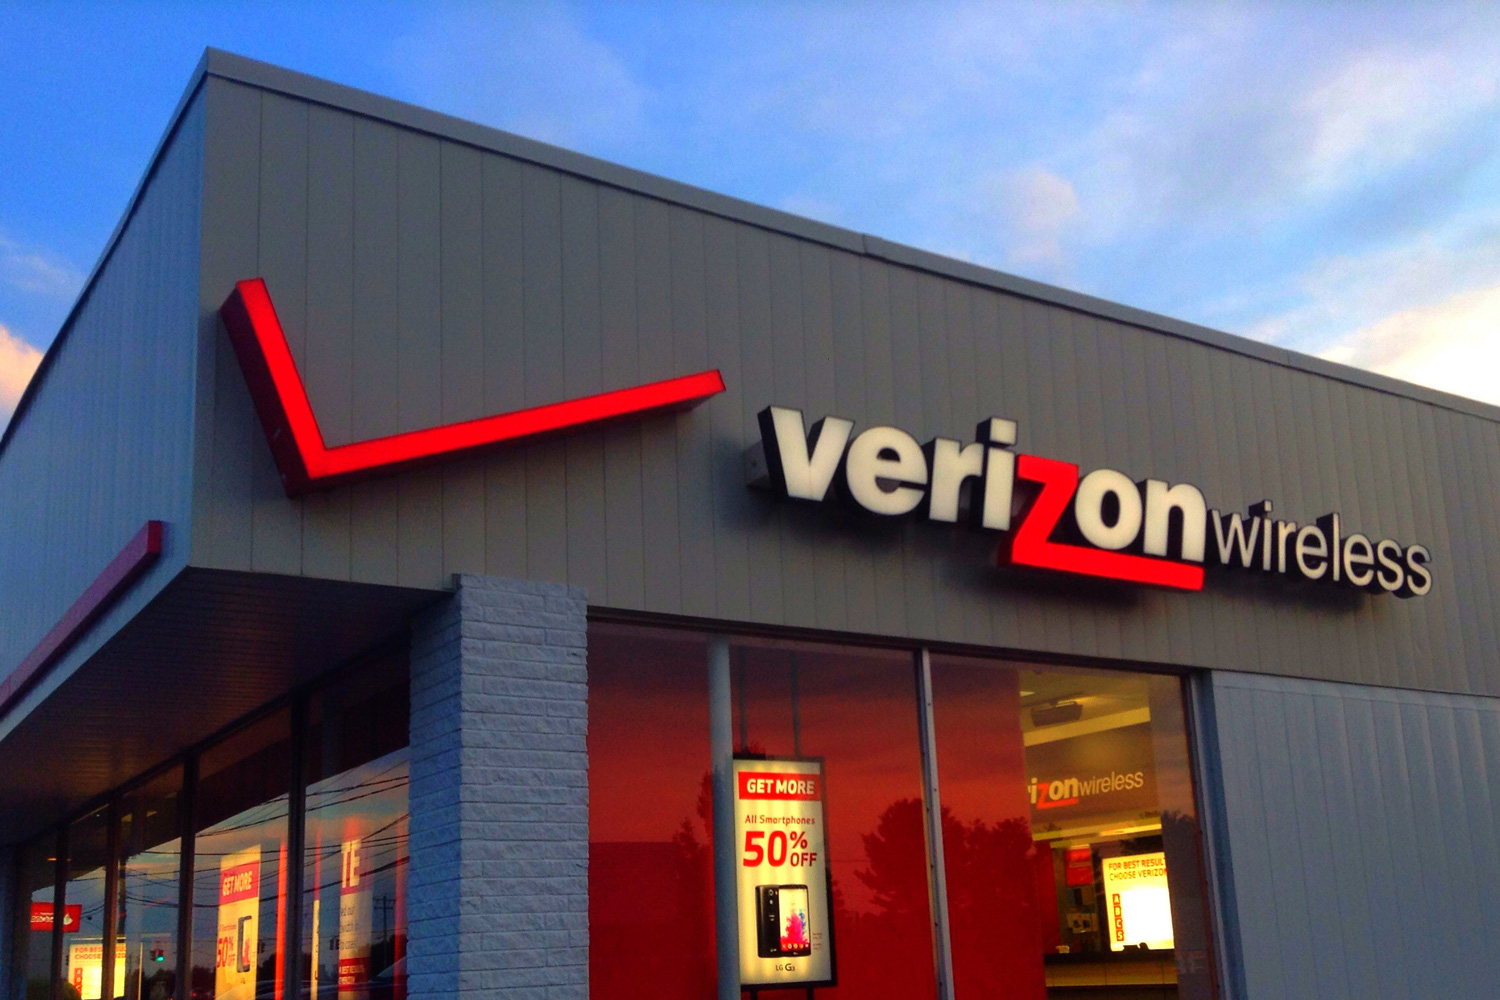 The Best Phones You Can Buy At Verizon Wireless Right Now